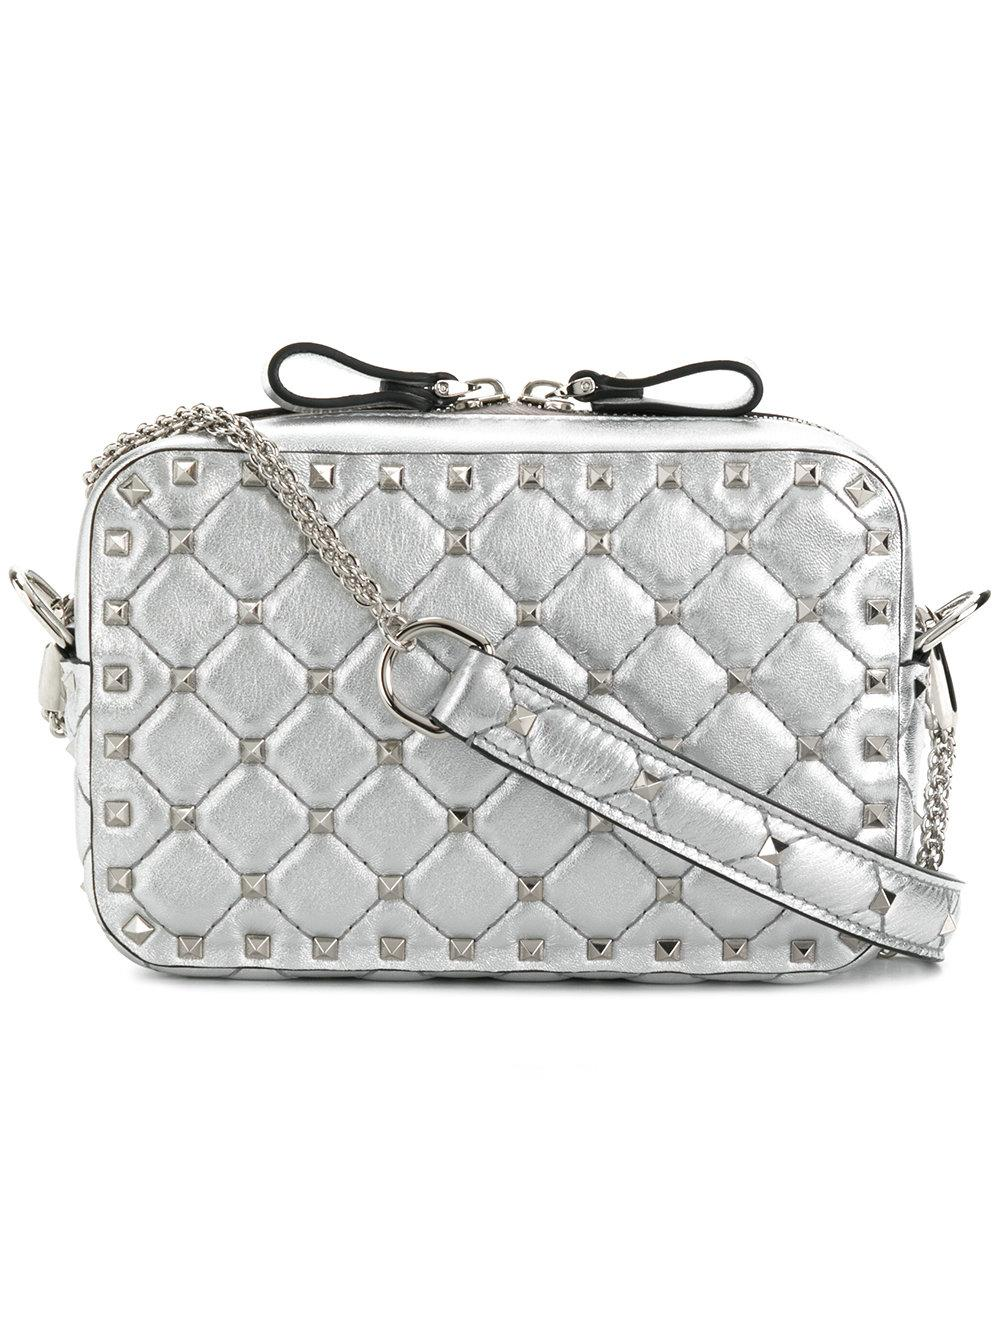 7d509ff7a Valentino Rockstud Spike Quilted Leather Camera Crossbody Bag In Metallic